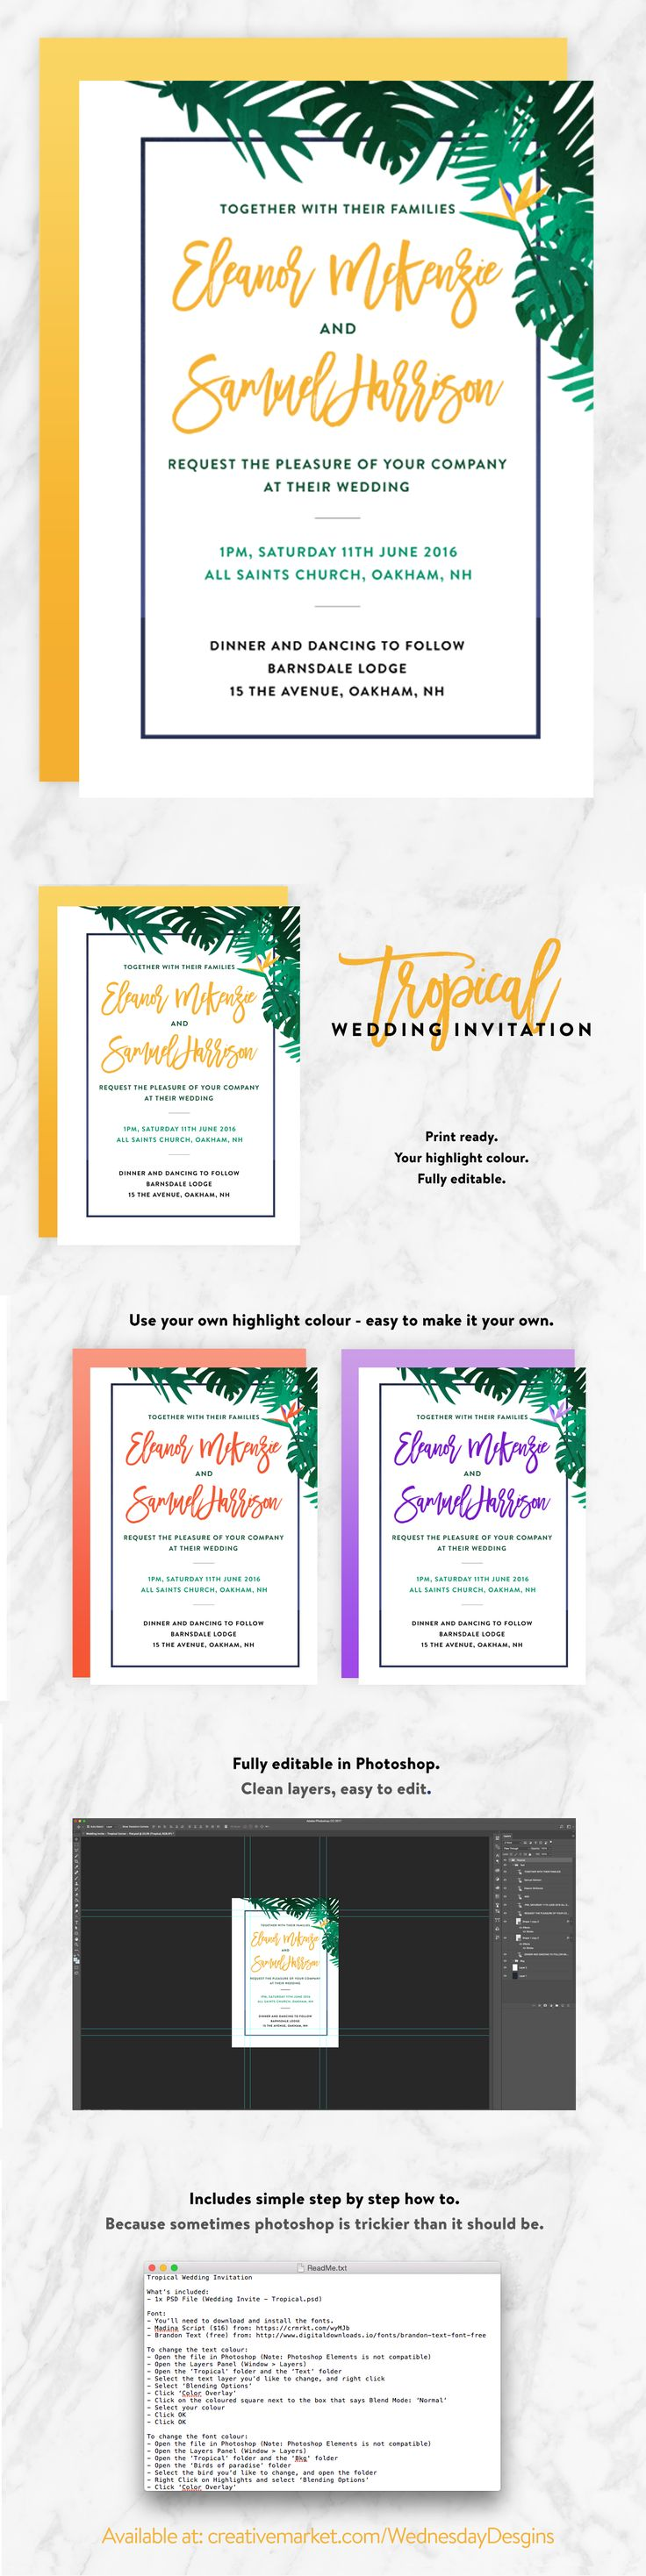 Such a fun, fresh wedding invite. Super easy to customise - perfect for DIY Weddings. Change the colour to suit your theme, save + print! Easy peasy.